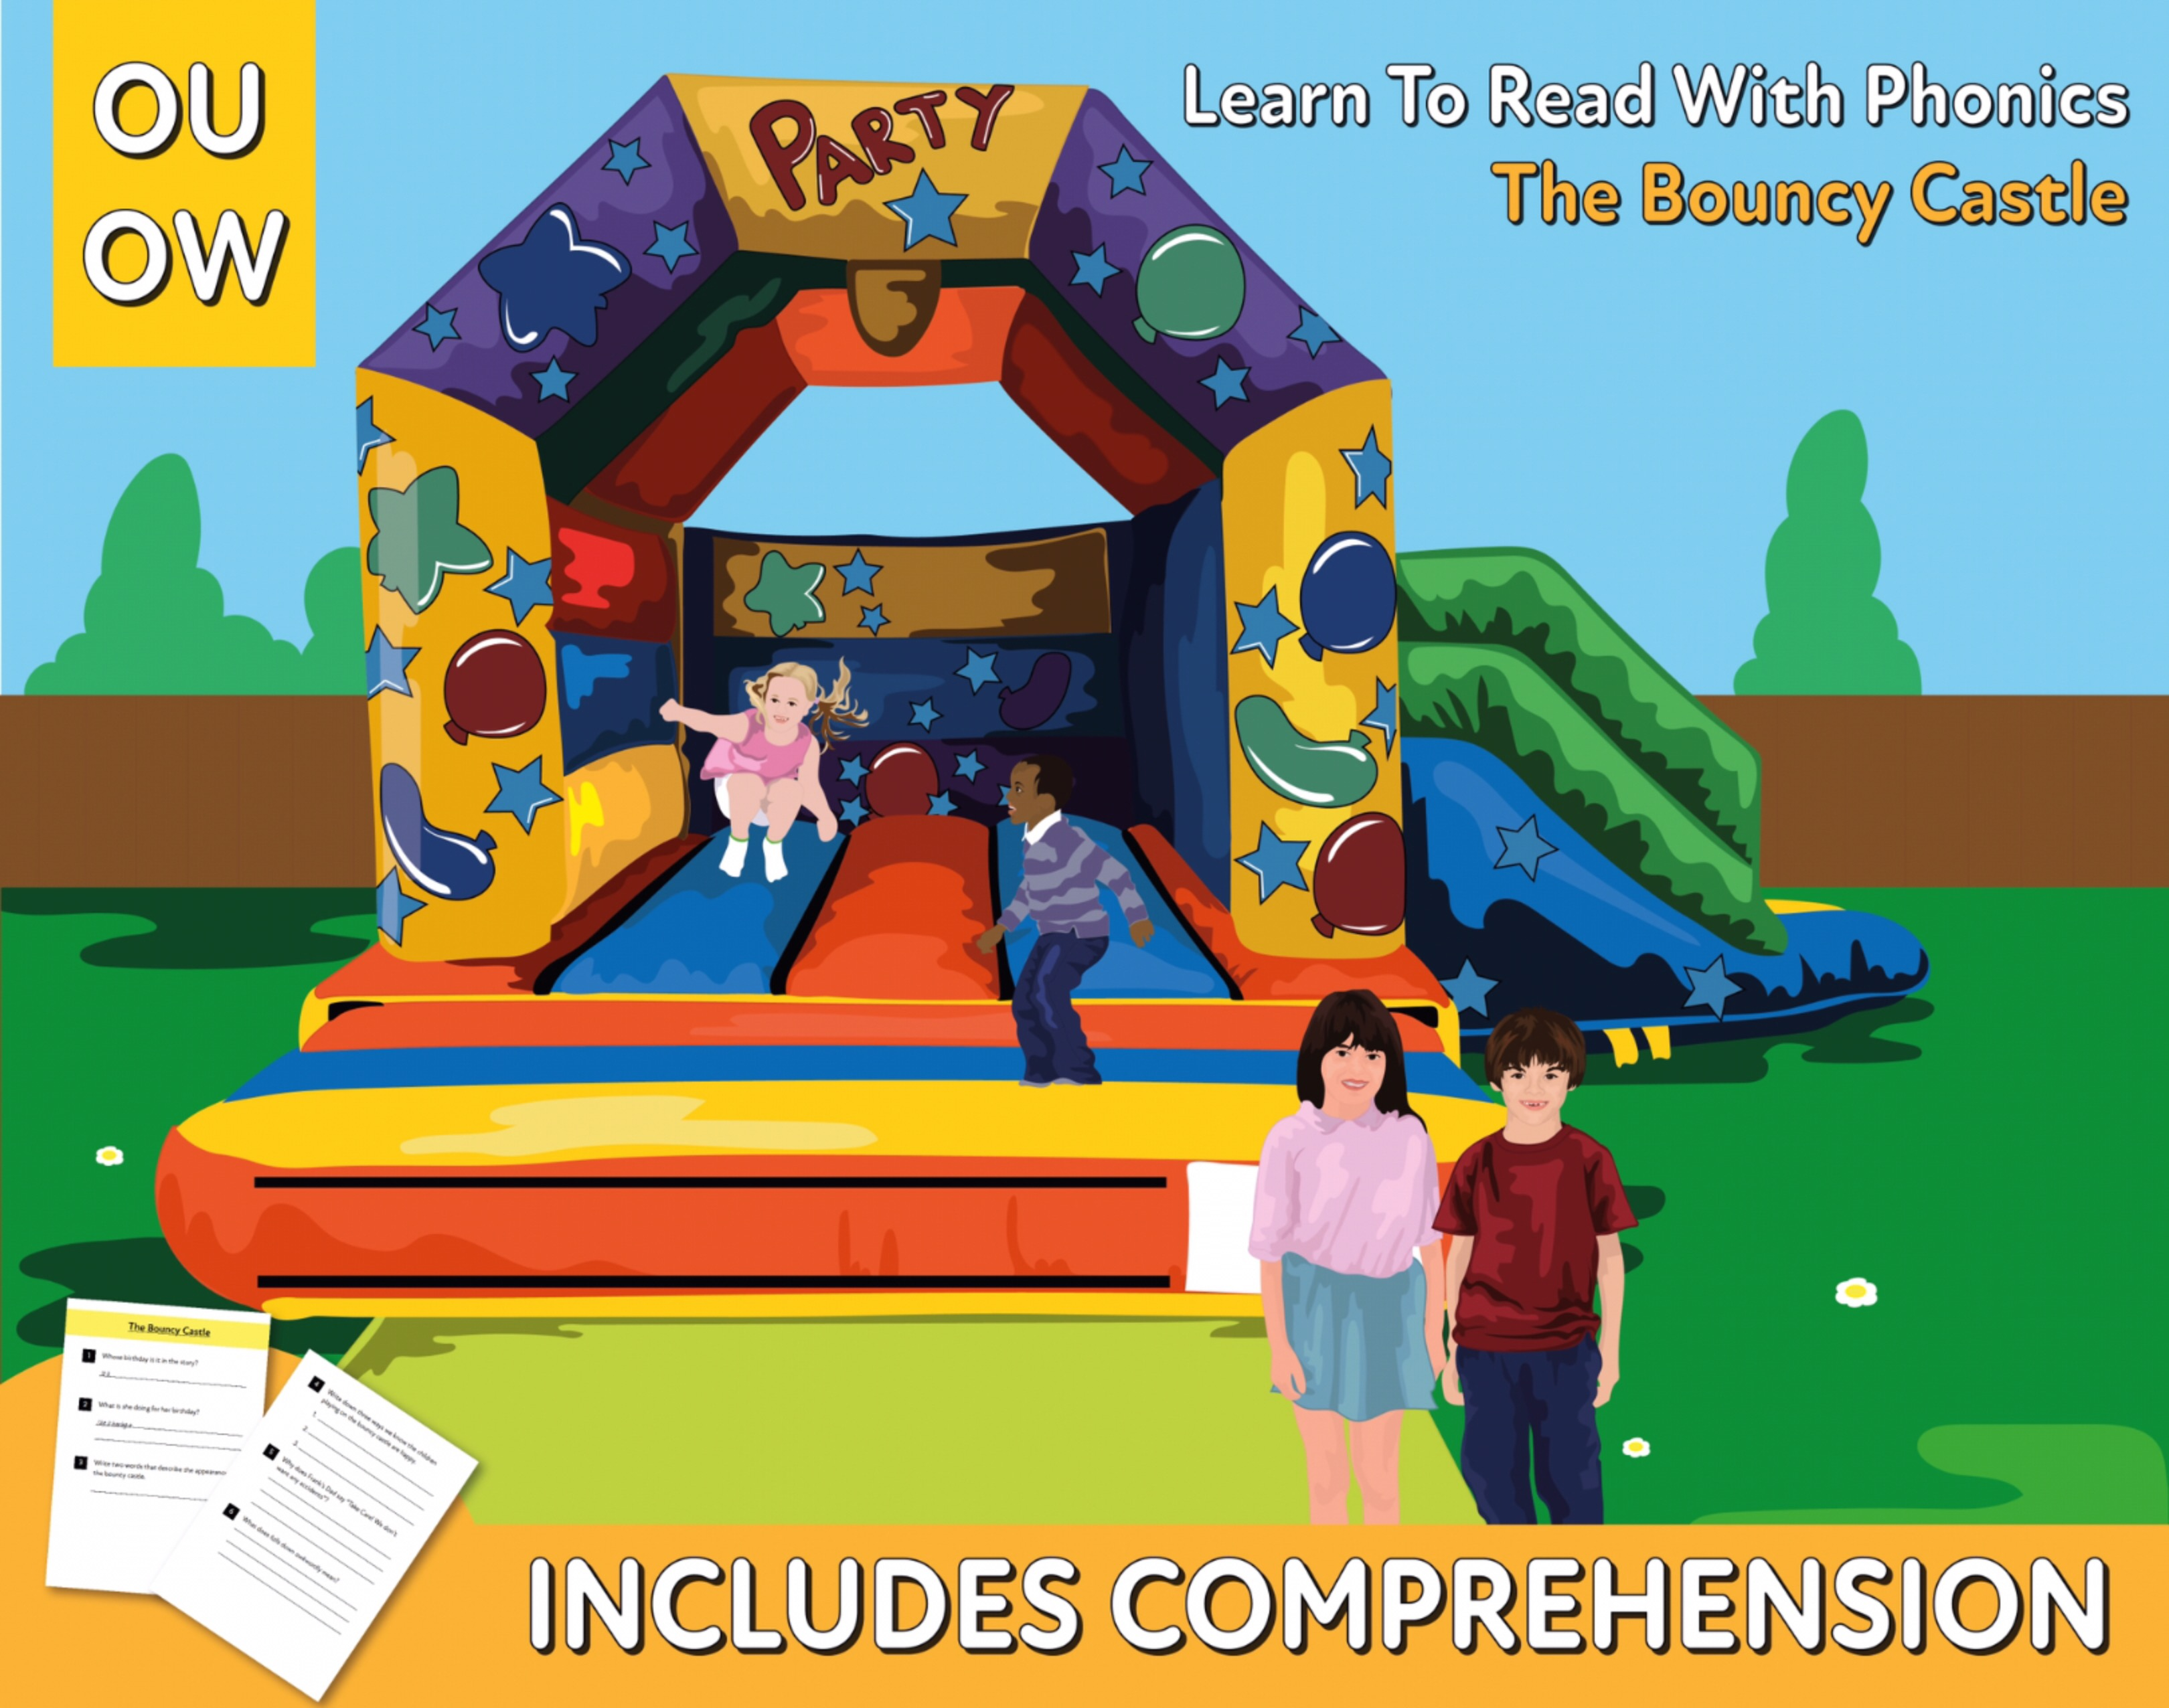 Reading Comprehension 'The Bouncy Castle' (4-8 years)